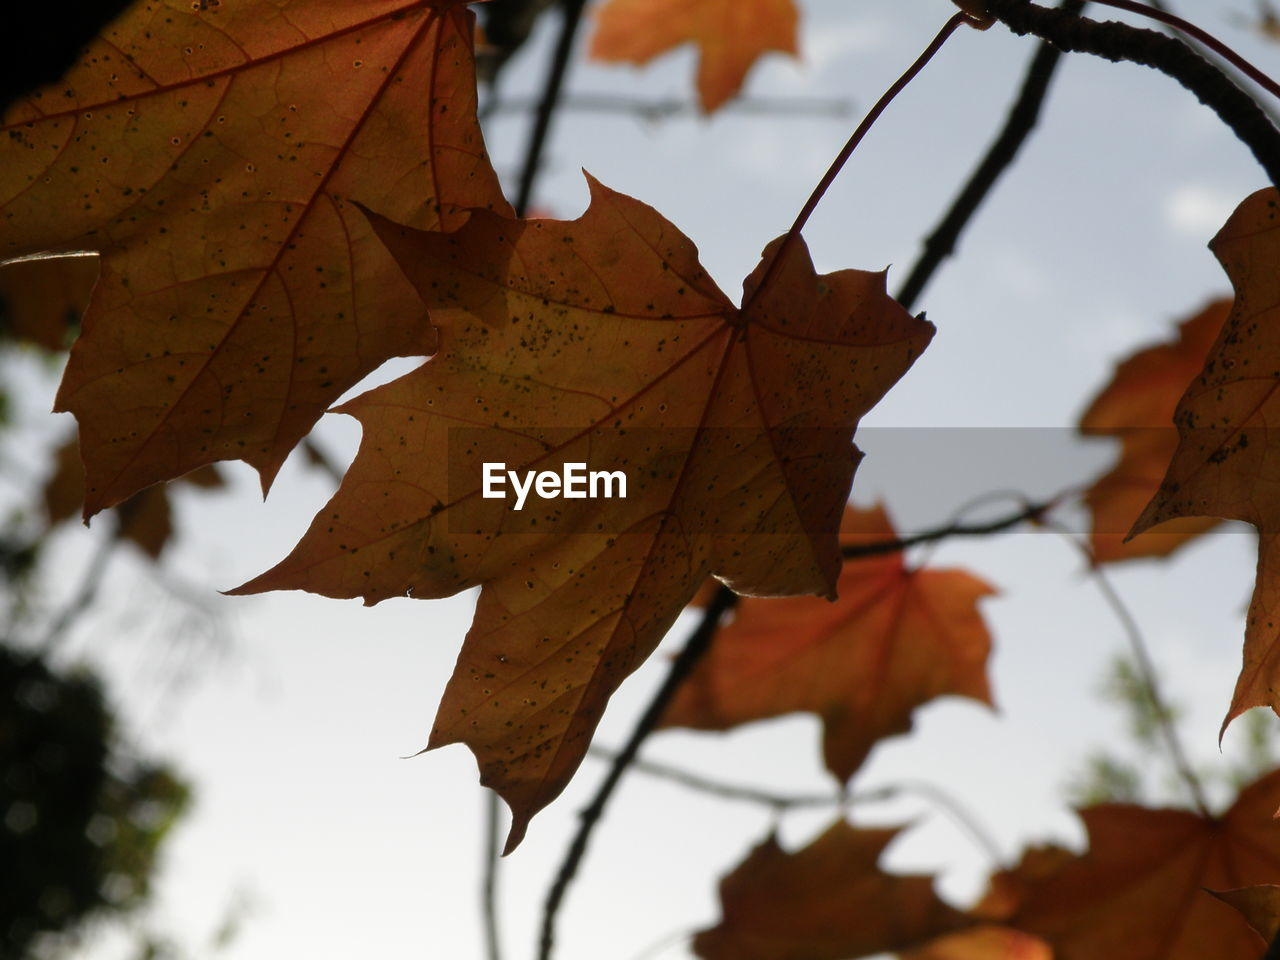 leaf, autumn, change, maple, maple leaf, day, focus on foreground, close-up, leaves, nature, outdoors, dry, beauty in nature, selective focus, no people, maple tree